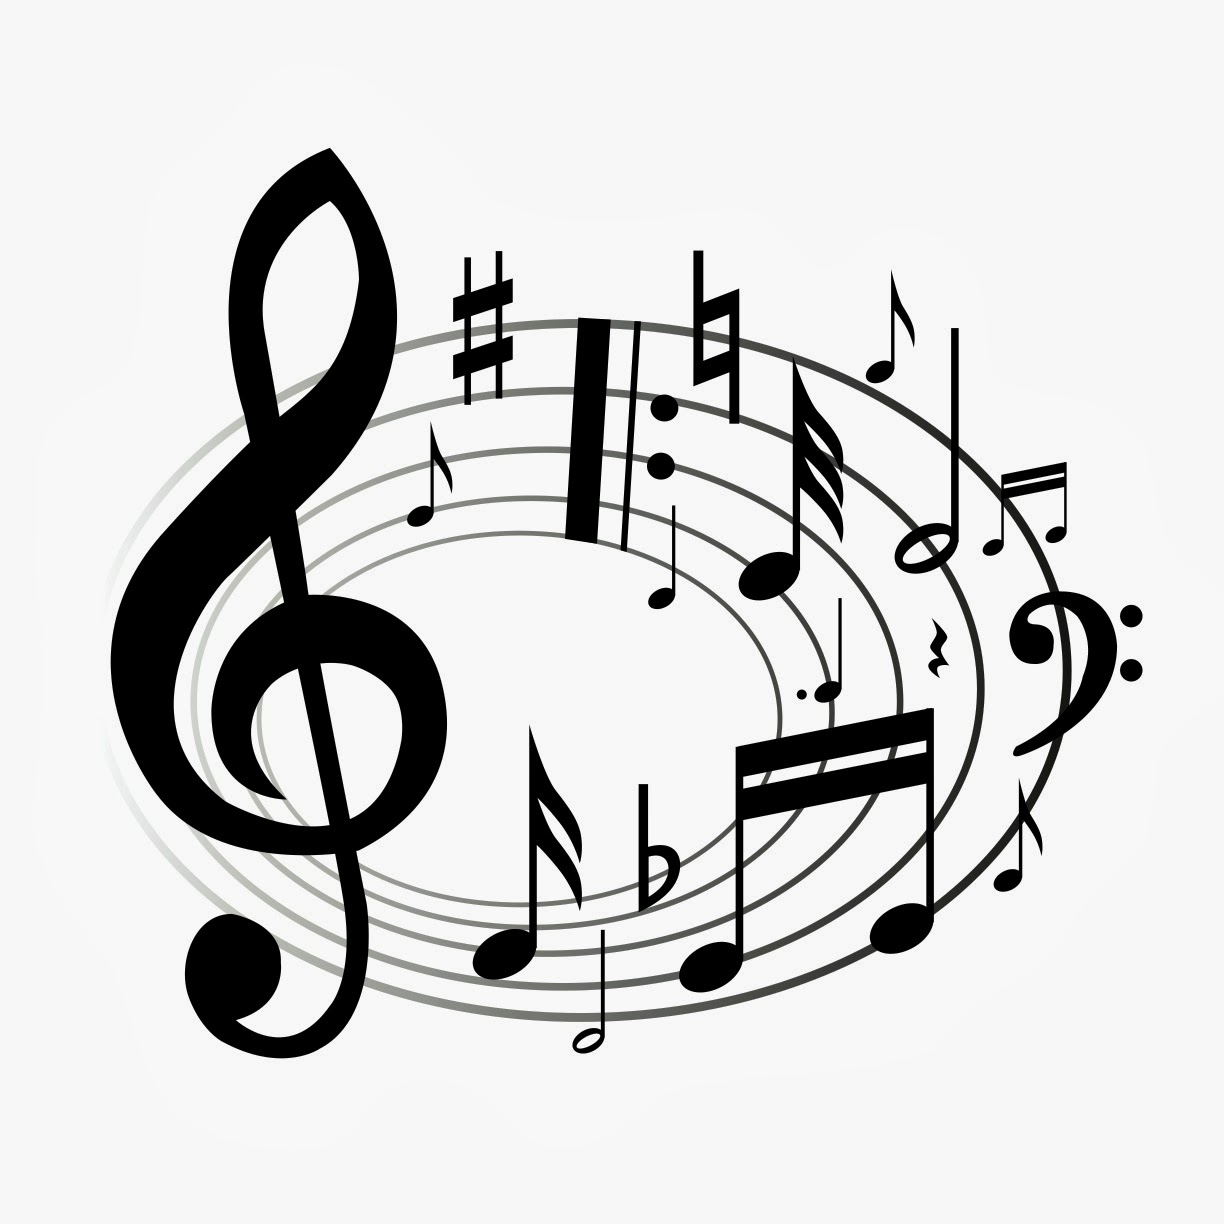 music words age clip clipart notes musical paper note song theatre concert years singing notas backgrounds different many night musicales